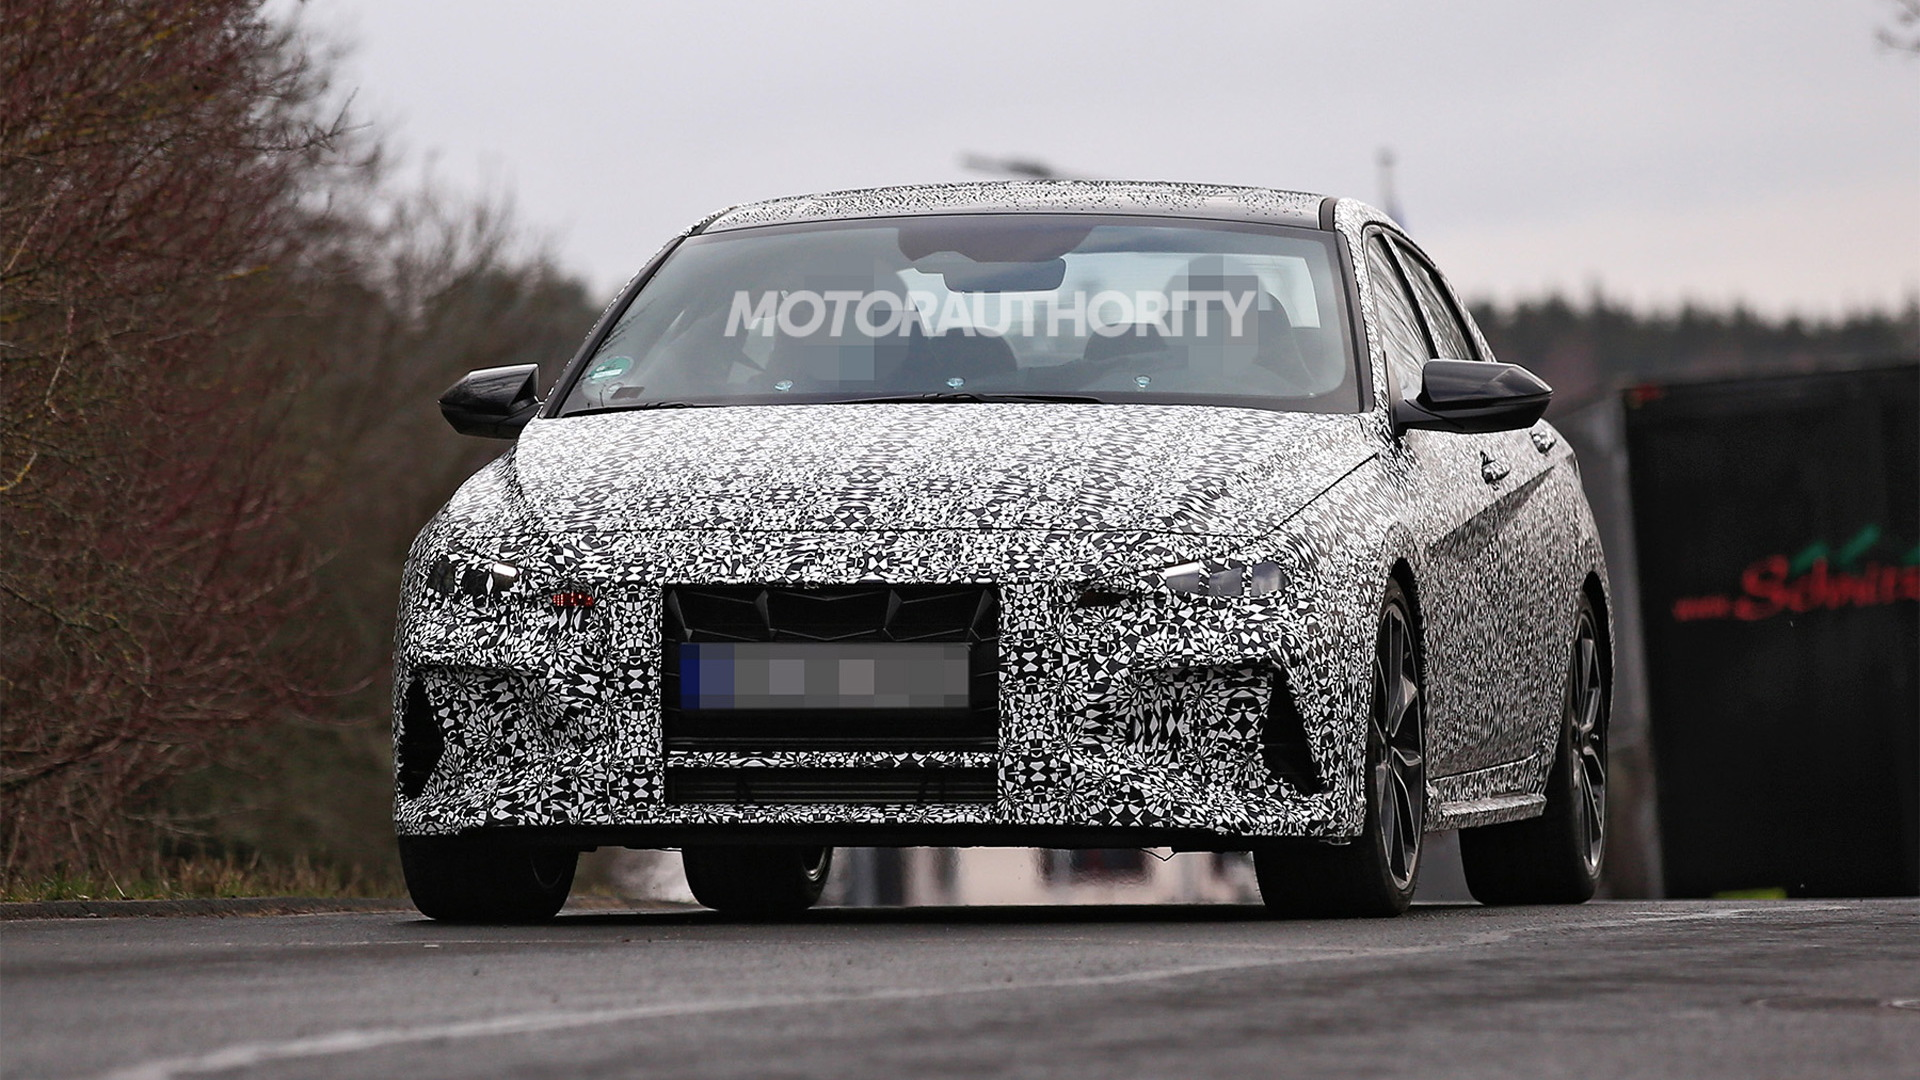 2022 Hyundai Elantra N spy shots - Photo credit: S. Baldauf/SB-Medien